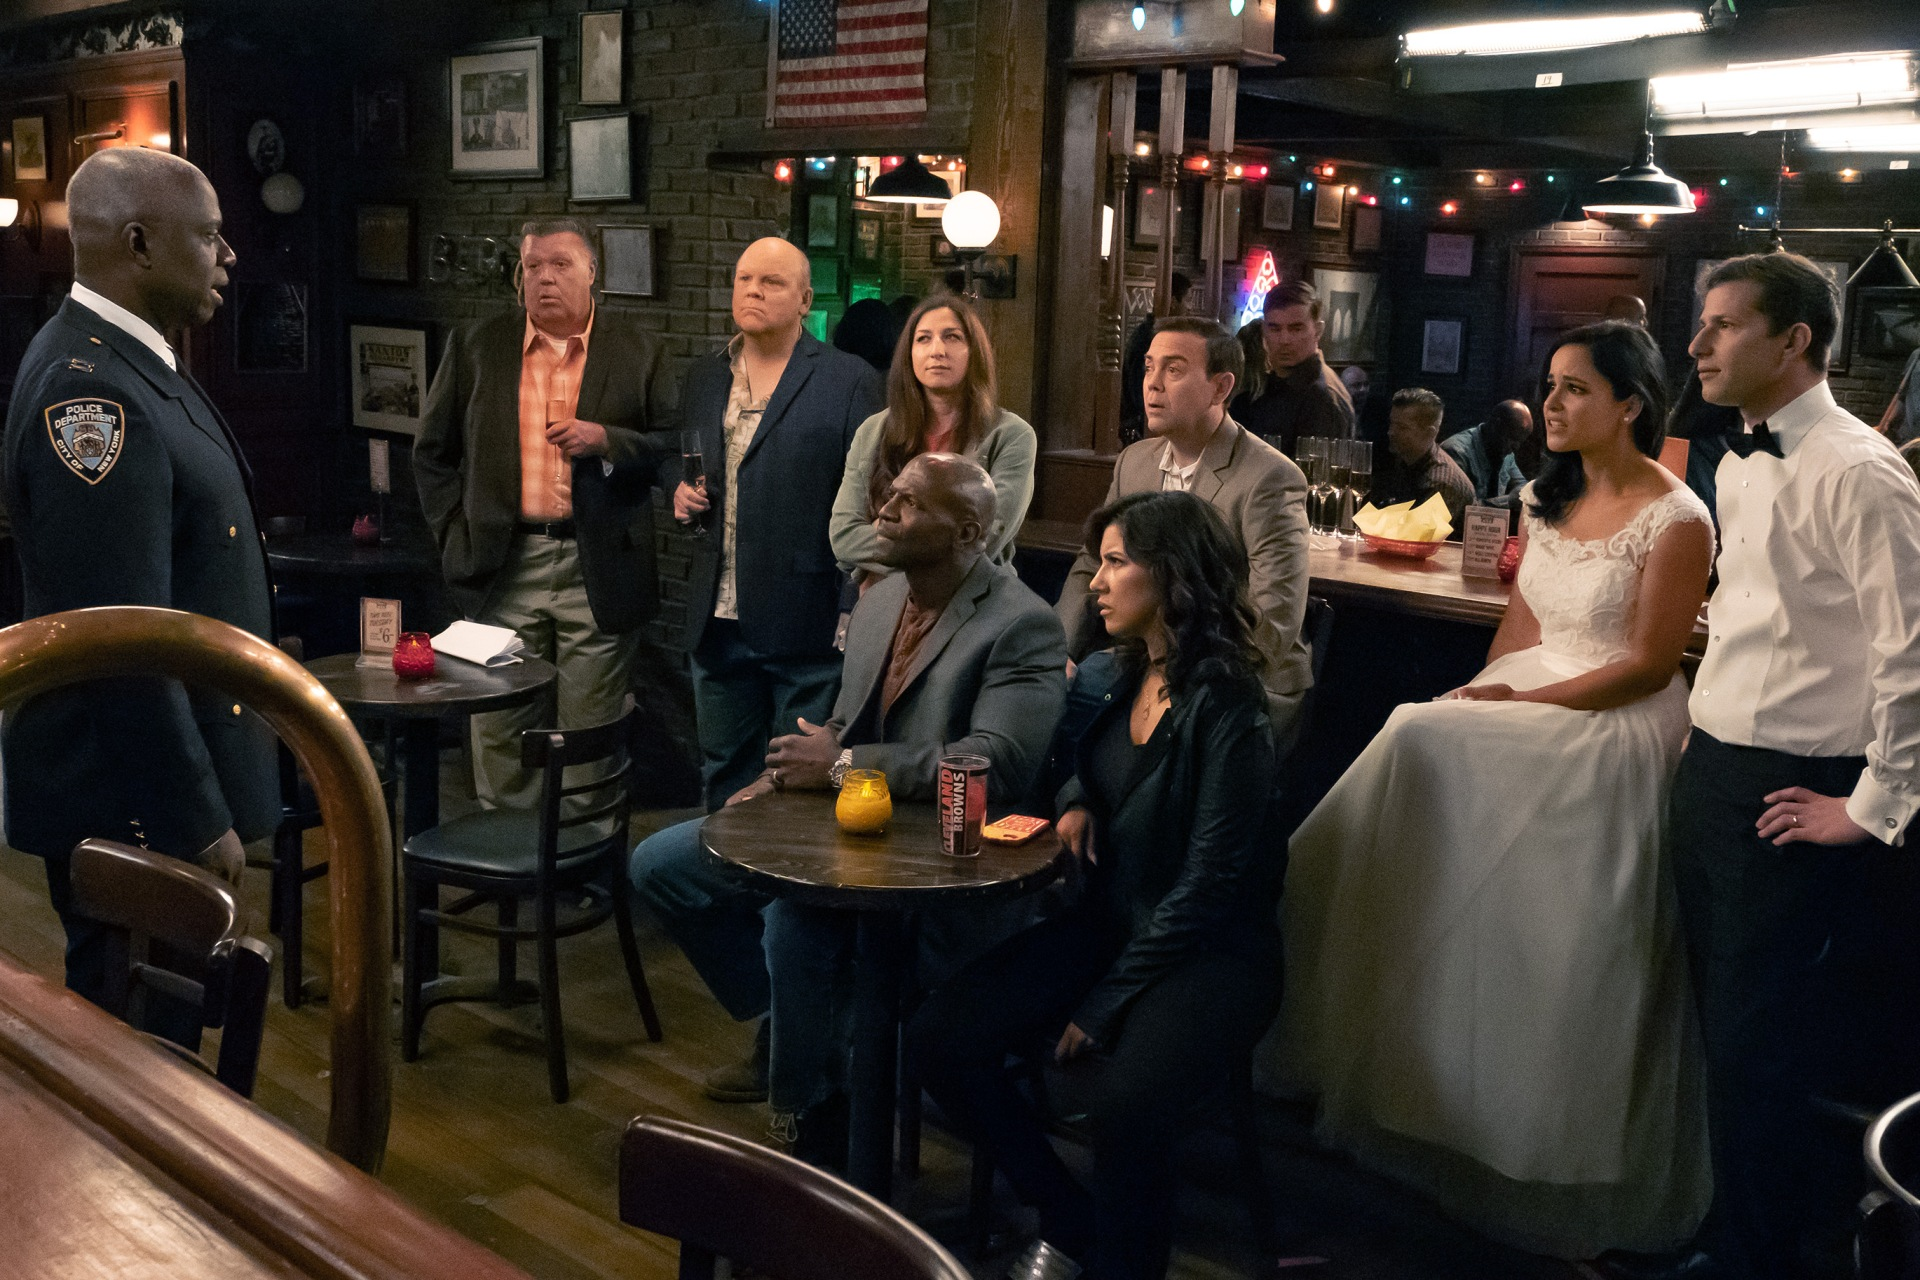 Which Brooklyn Nine-Nine Character Are You Based on Your Zodiac Sign?